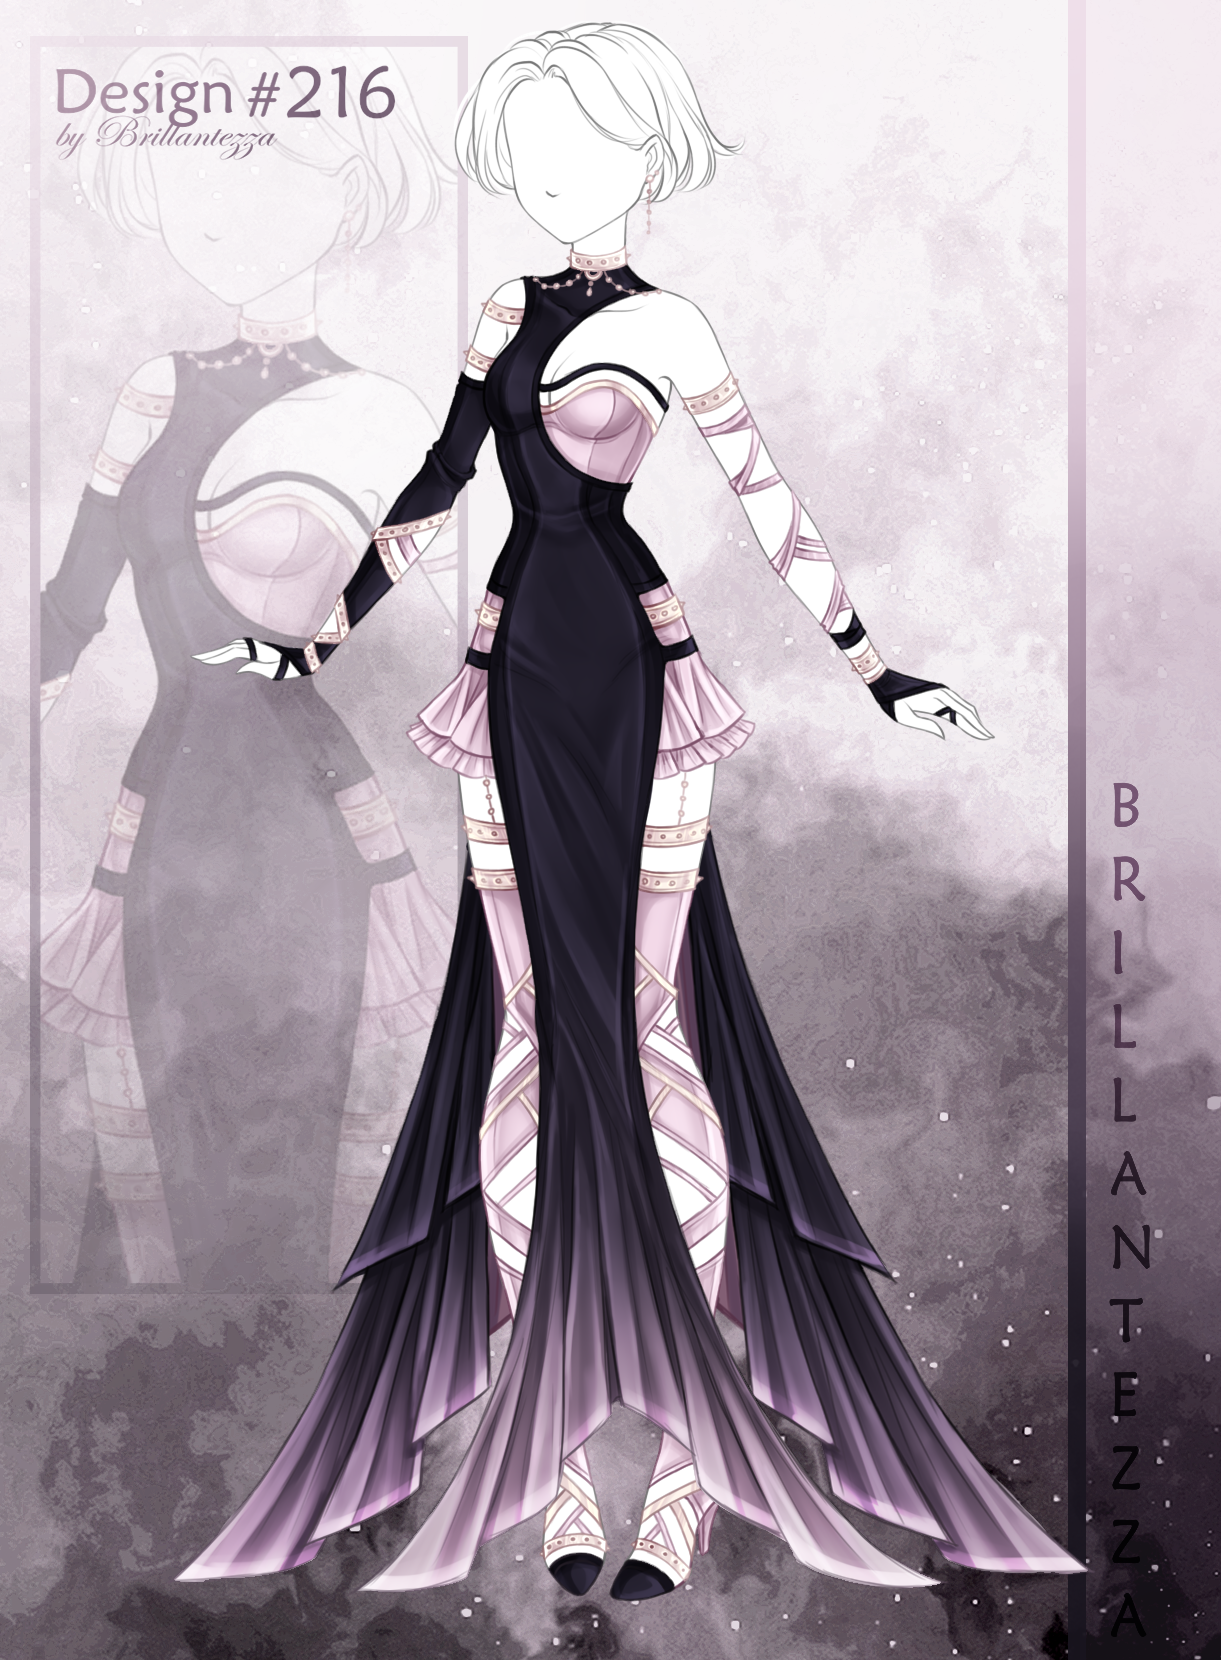 Pin by Nyx Dragon on Designs, YCHs, Adops in 2020 | Dress